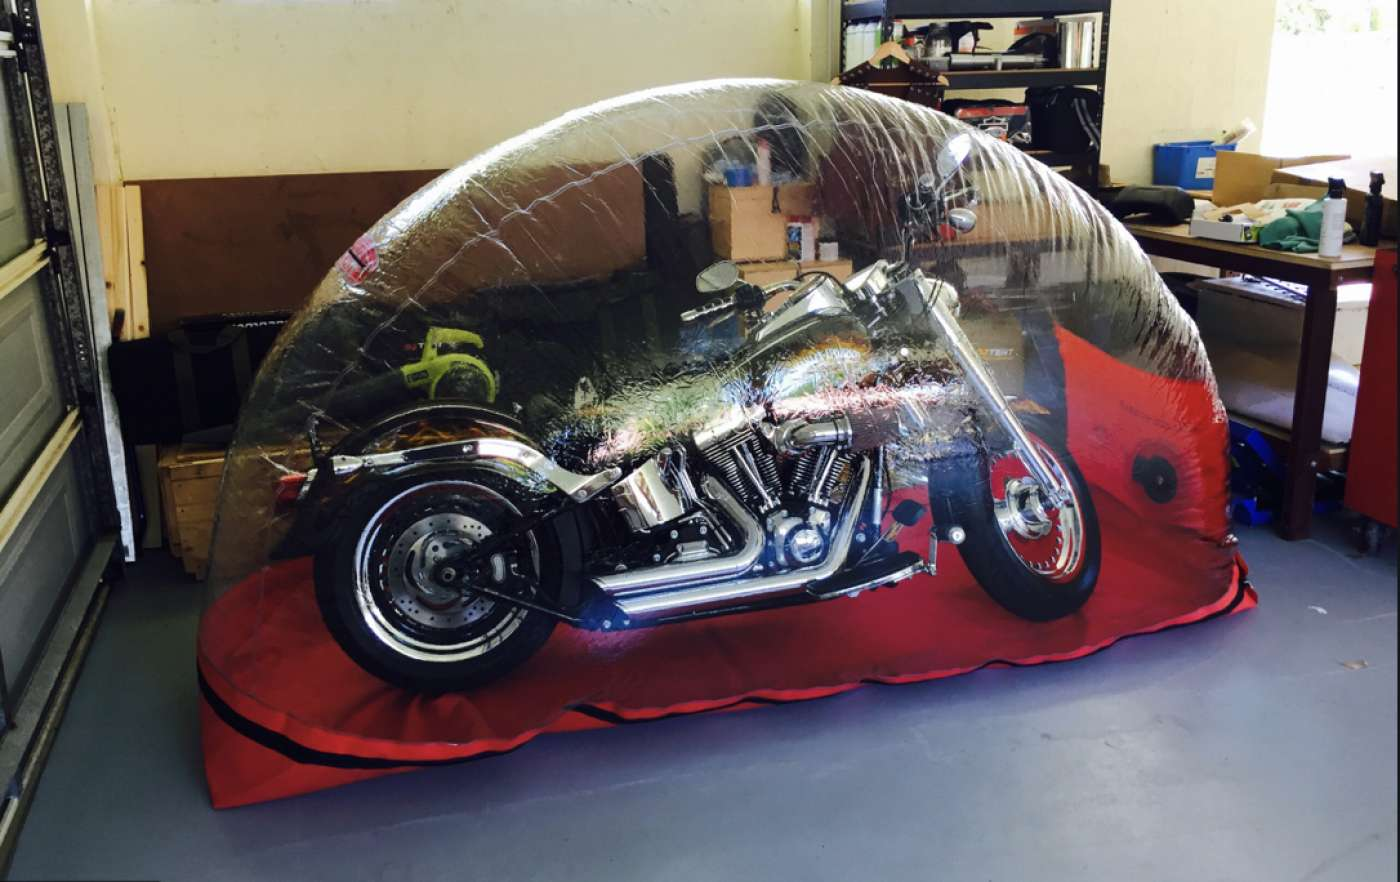 Large Carcoon Indoor Motorbike bubble